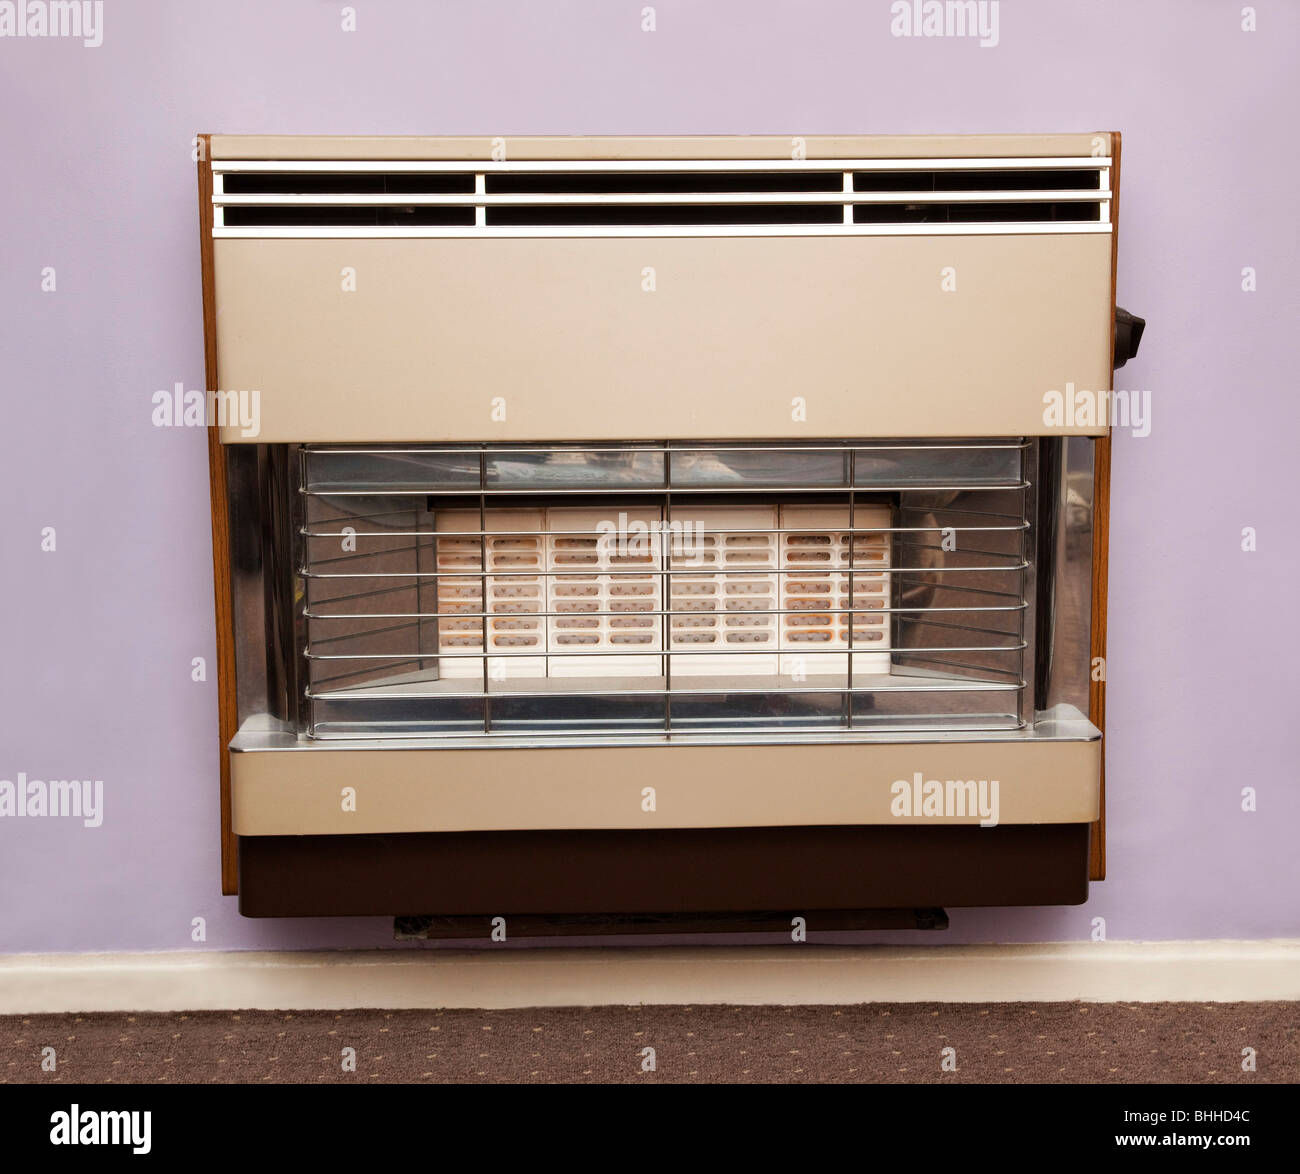 gas heater in room - Stock Image